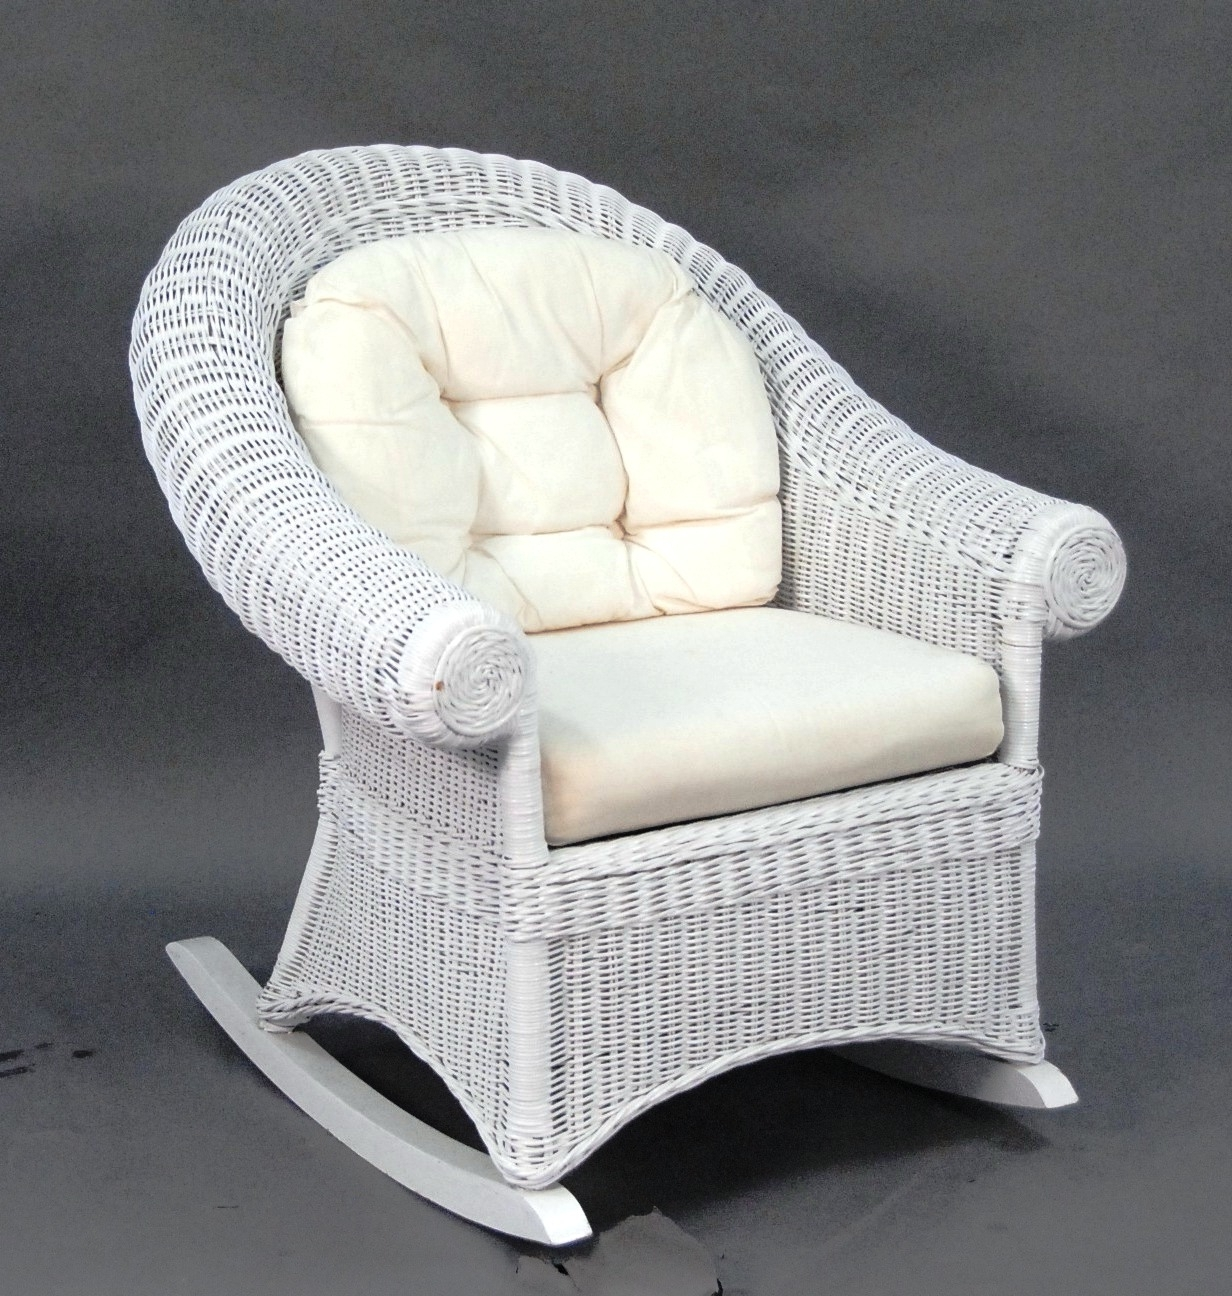 Preferred Rocking Chair : Wicker Rocking Chair With Springs , With Regard To Vintage Wicker Rocking Chairs (View 18 of 20)